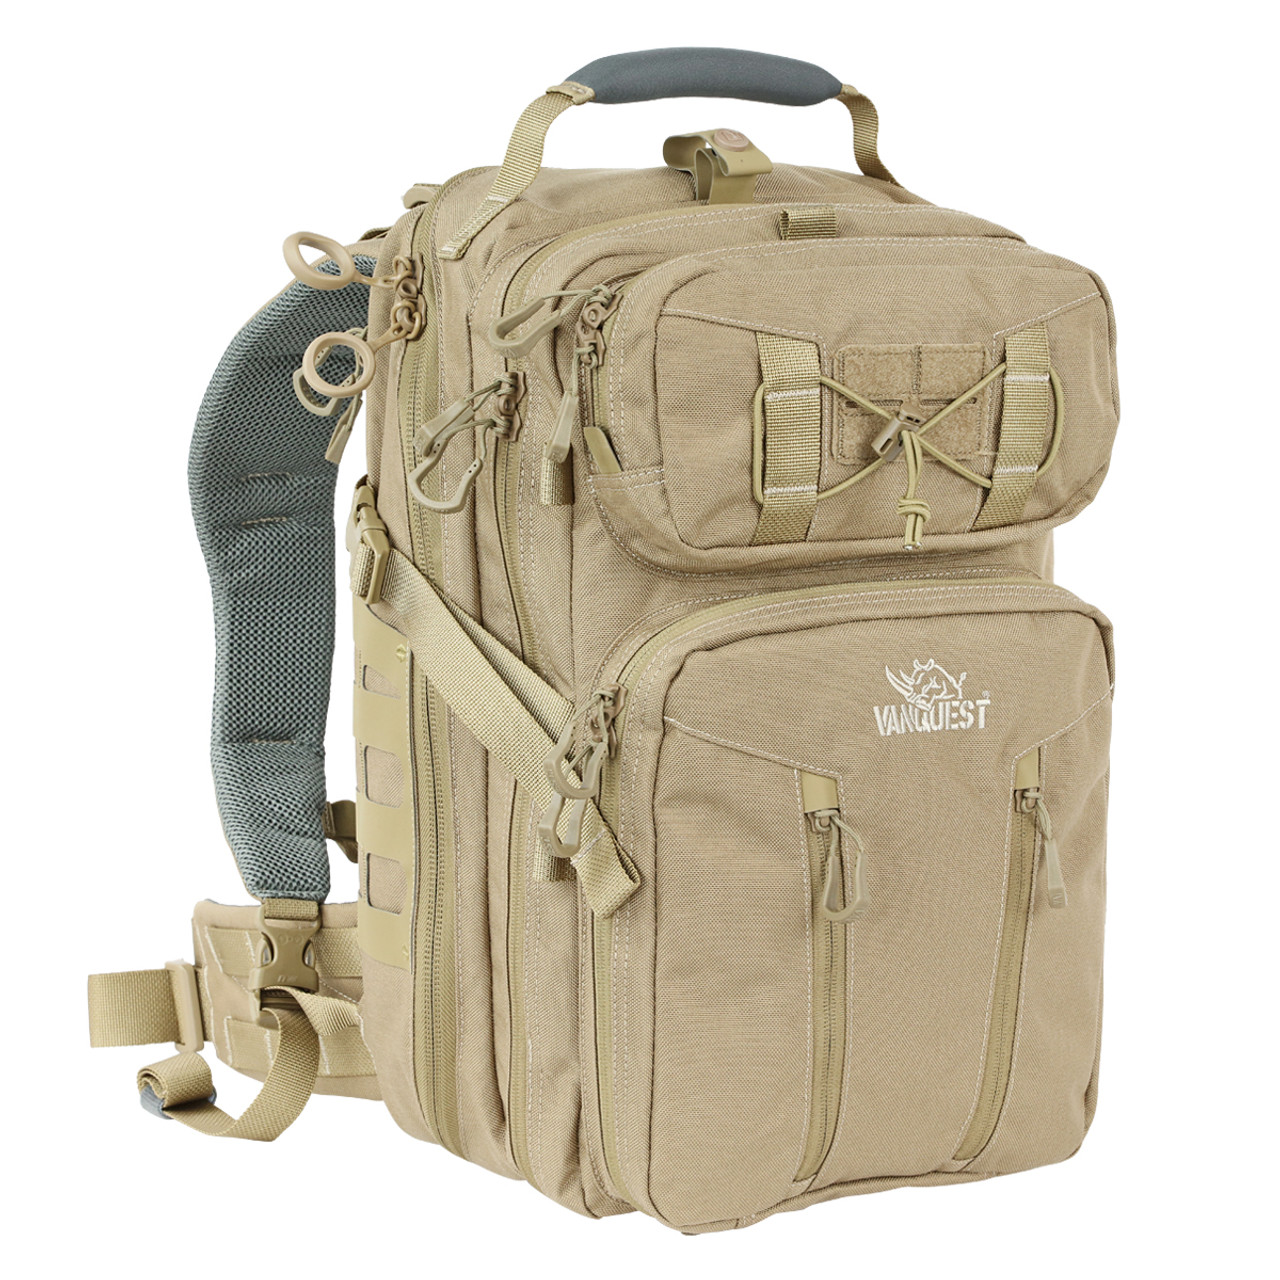 5b0796a00e FALCONER-30 Backpack - VANQUEST  TOUGH-BUILT GEAR